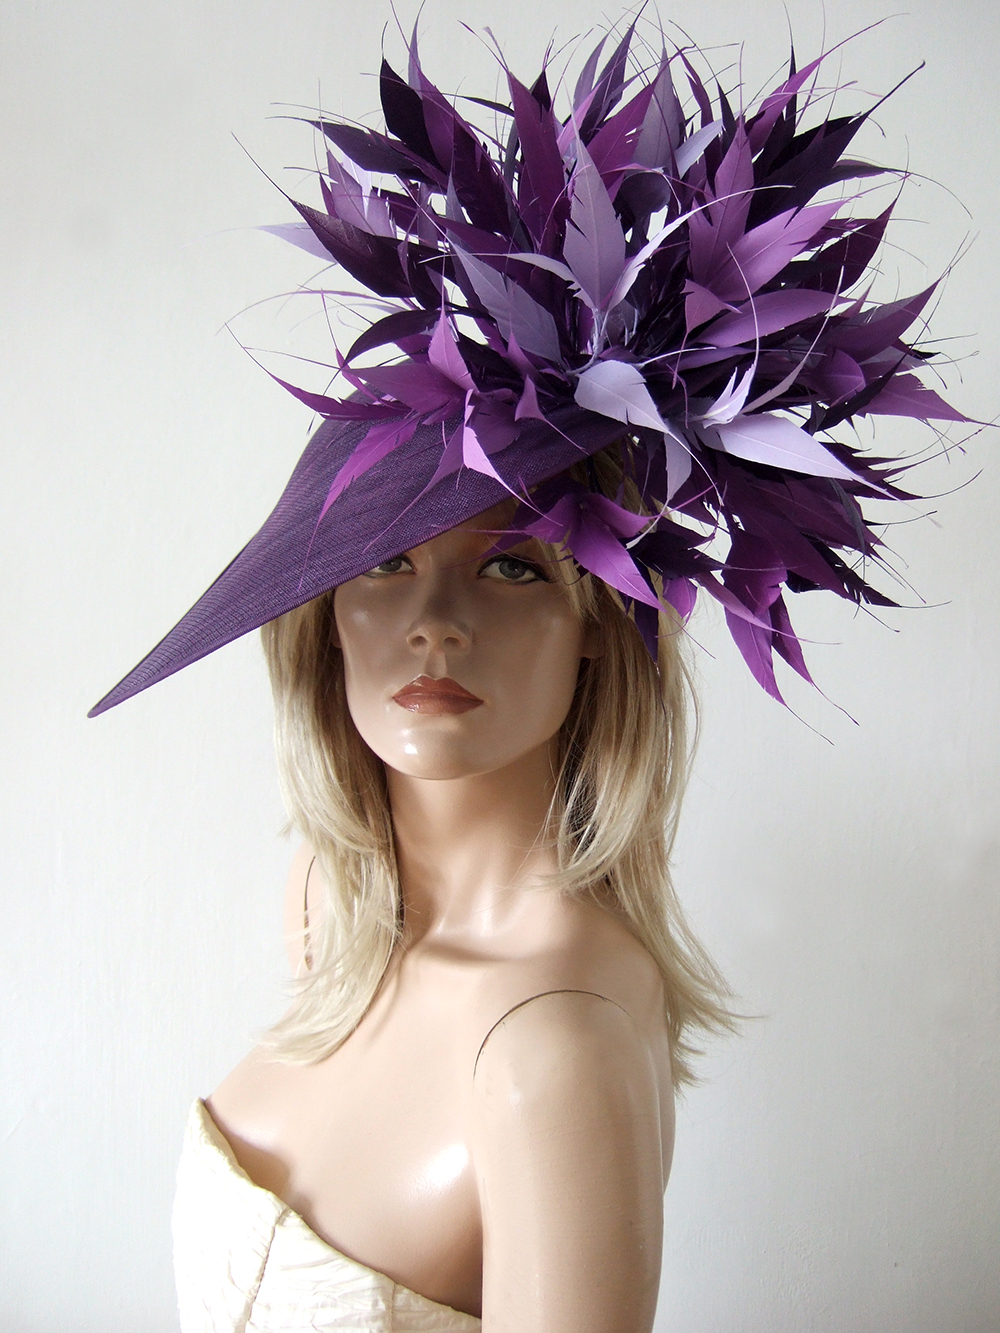 Designer Hats for Hire London. Hostie Hats 2021. Hostie Hats Bamburgh Dish Hat. Mother of the Bride Hats 2021. Hats for Wedding Guests UK. Best Royal Ascot Hats 2021. Designer Hat for Hire 2021. Wedding Hats for Hire UK 2021. Big Purple Hats for the Races. Mother of the Bride Hat Hire 2021. Big Purple Wedding Guest Hats.